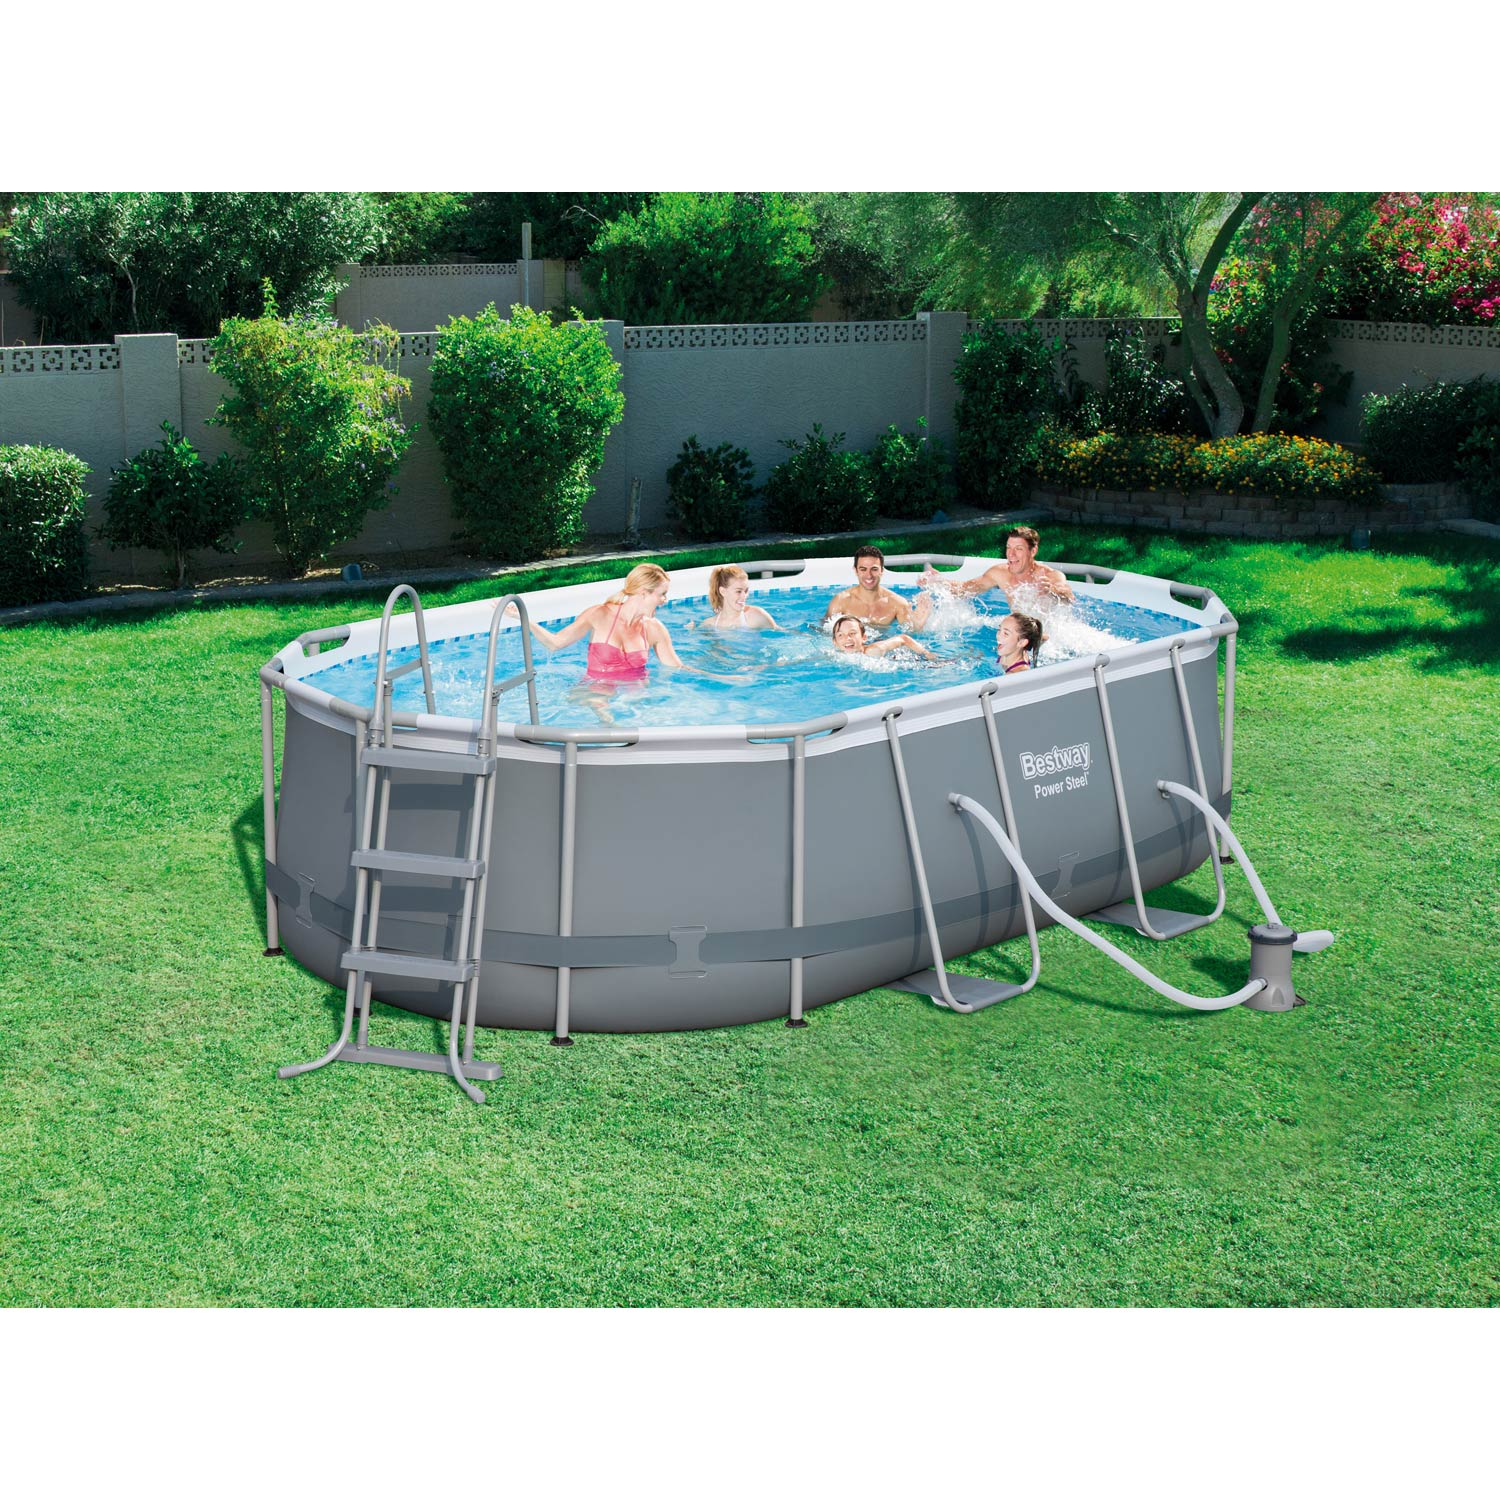 Piscine hors sol autoportante tubulaire bestway l x for Piscine hors sol durable